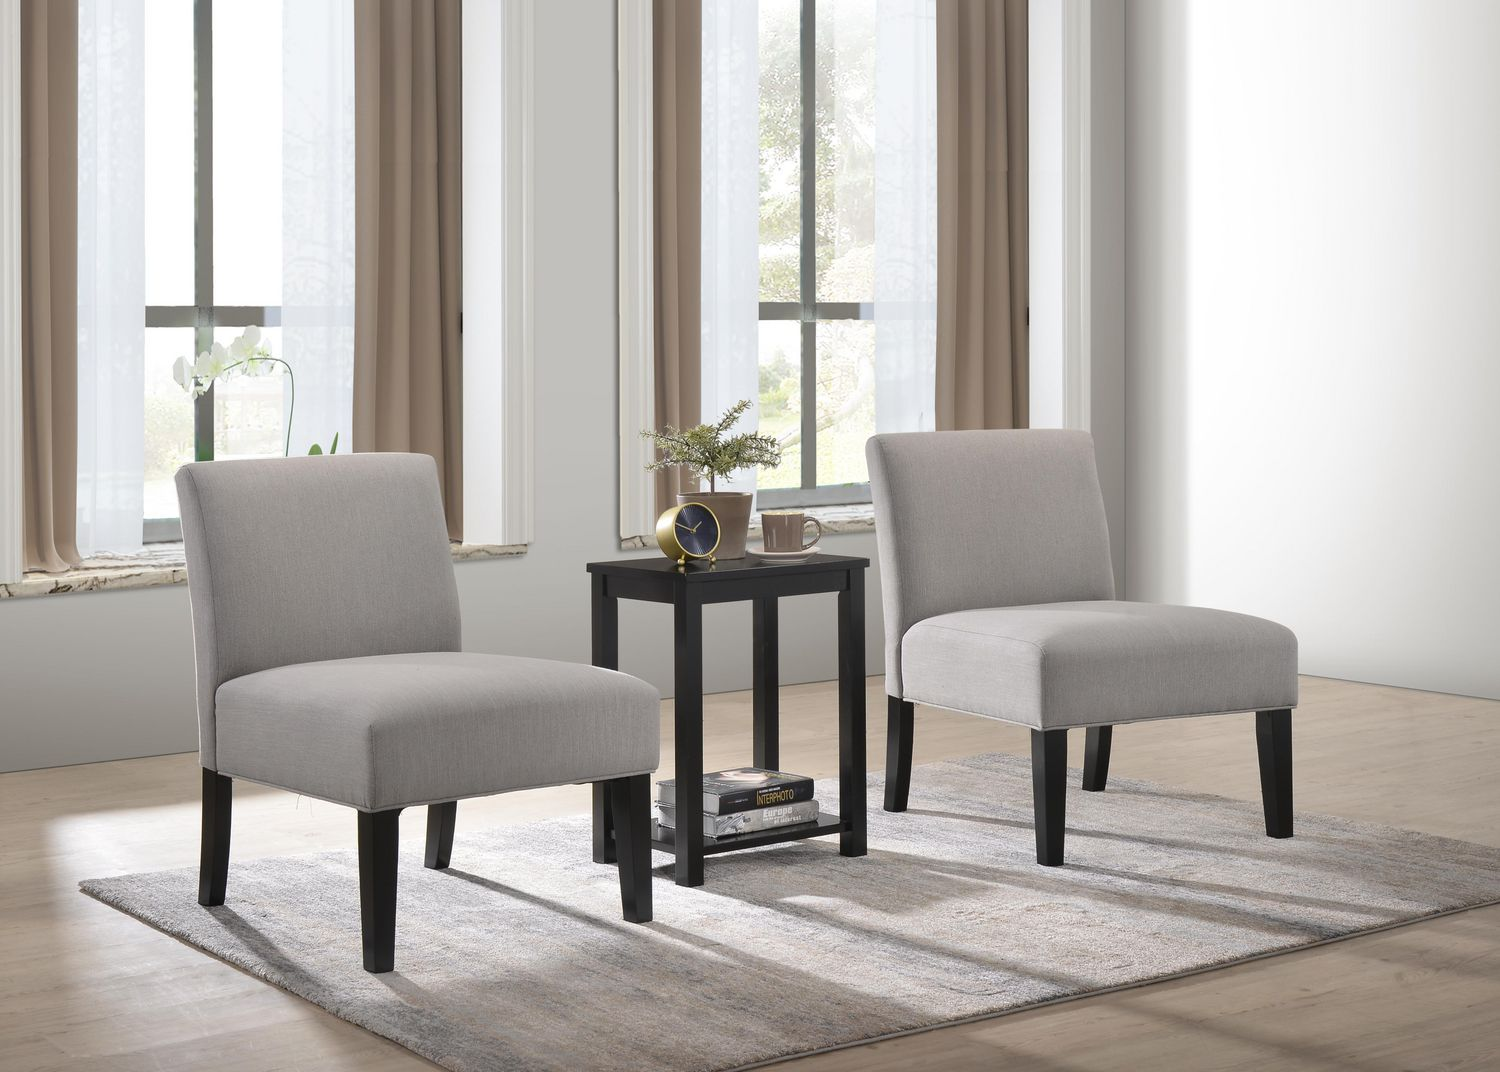 Aldo 2 Accent Chairs With Occasional Table